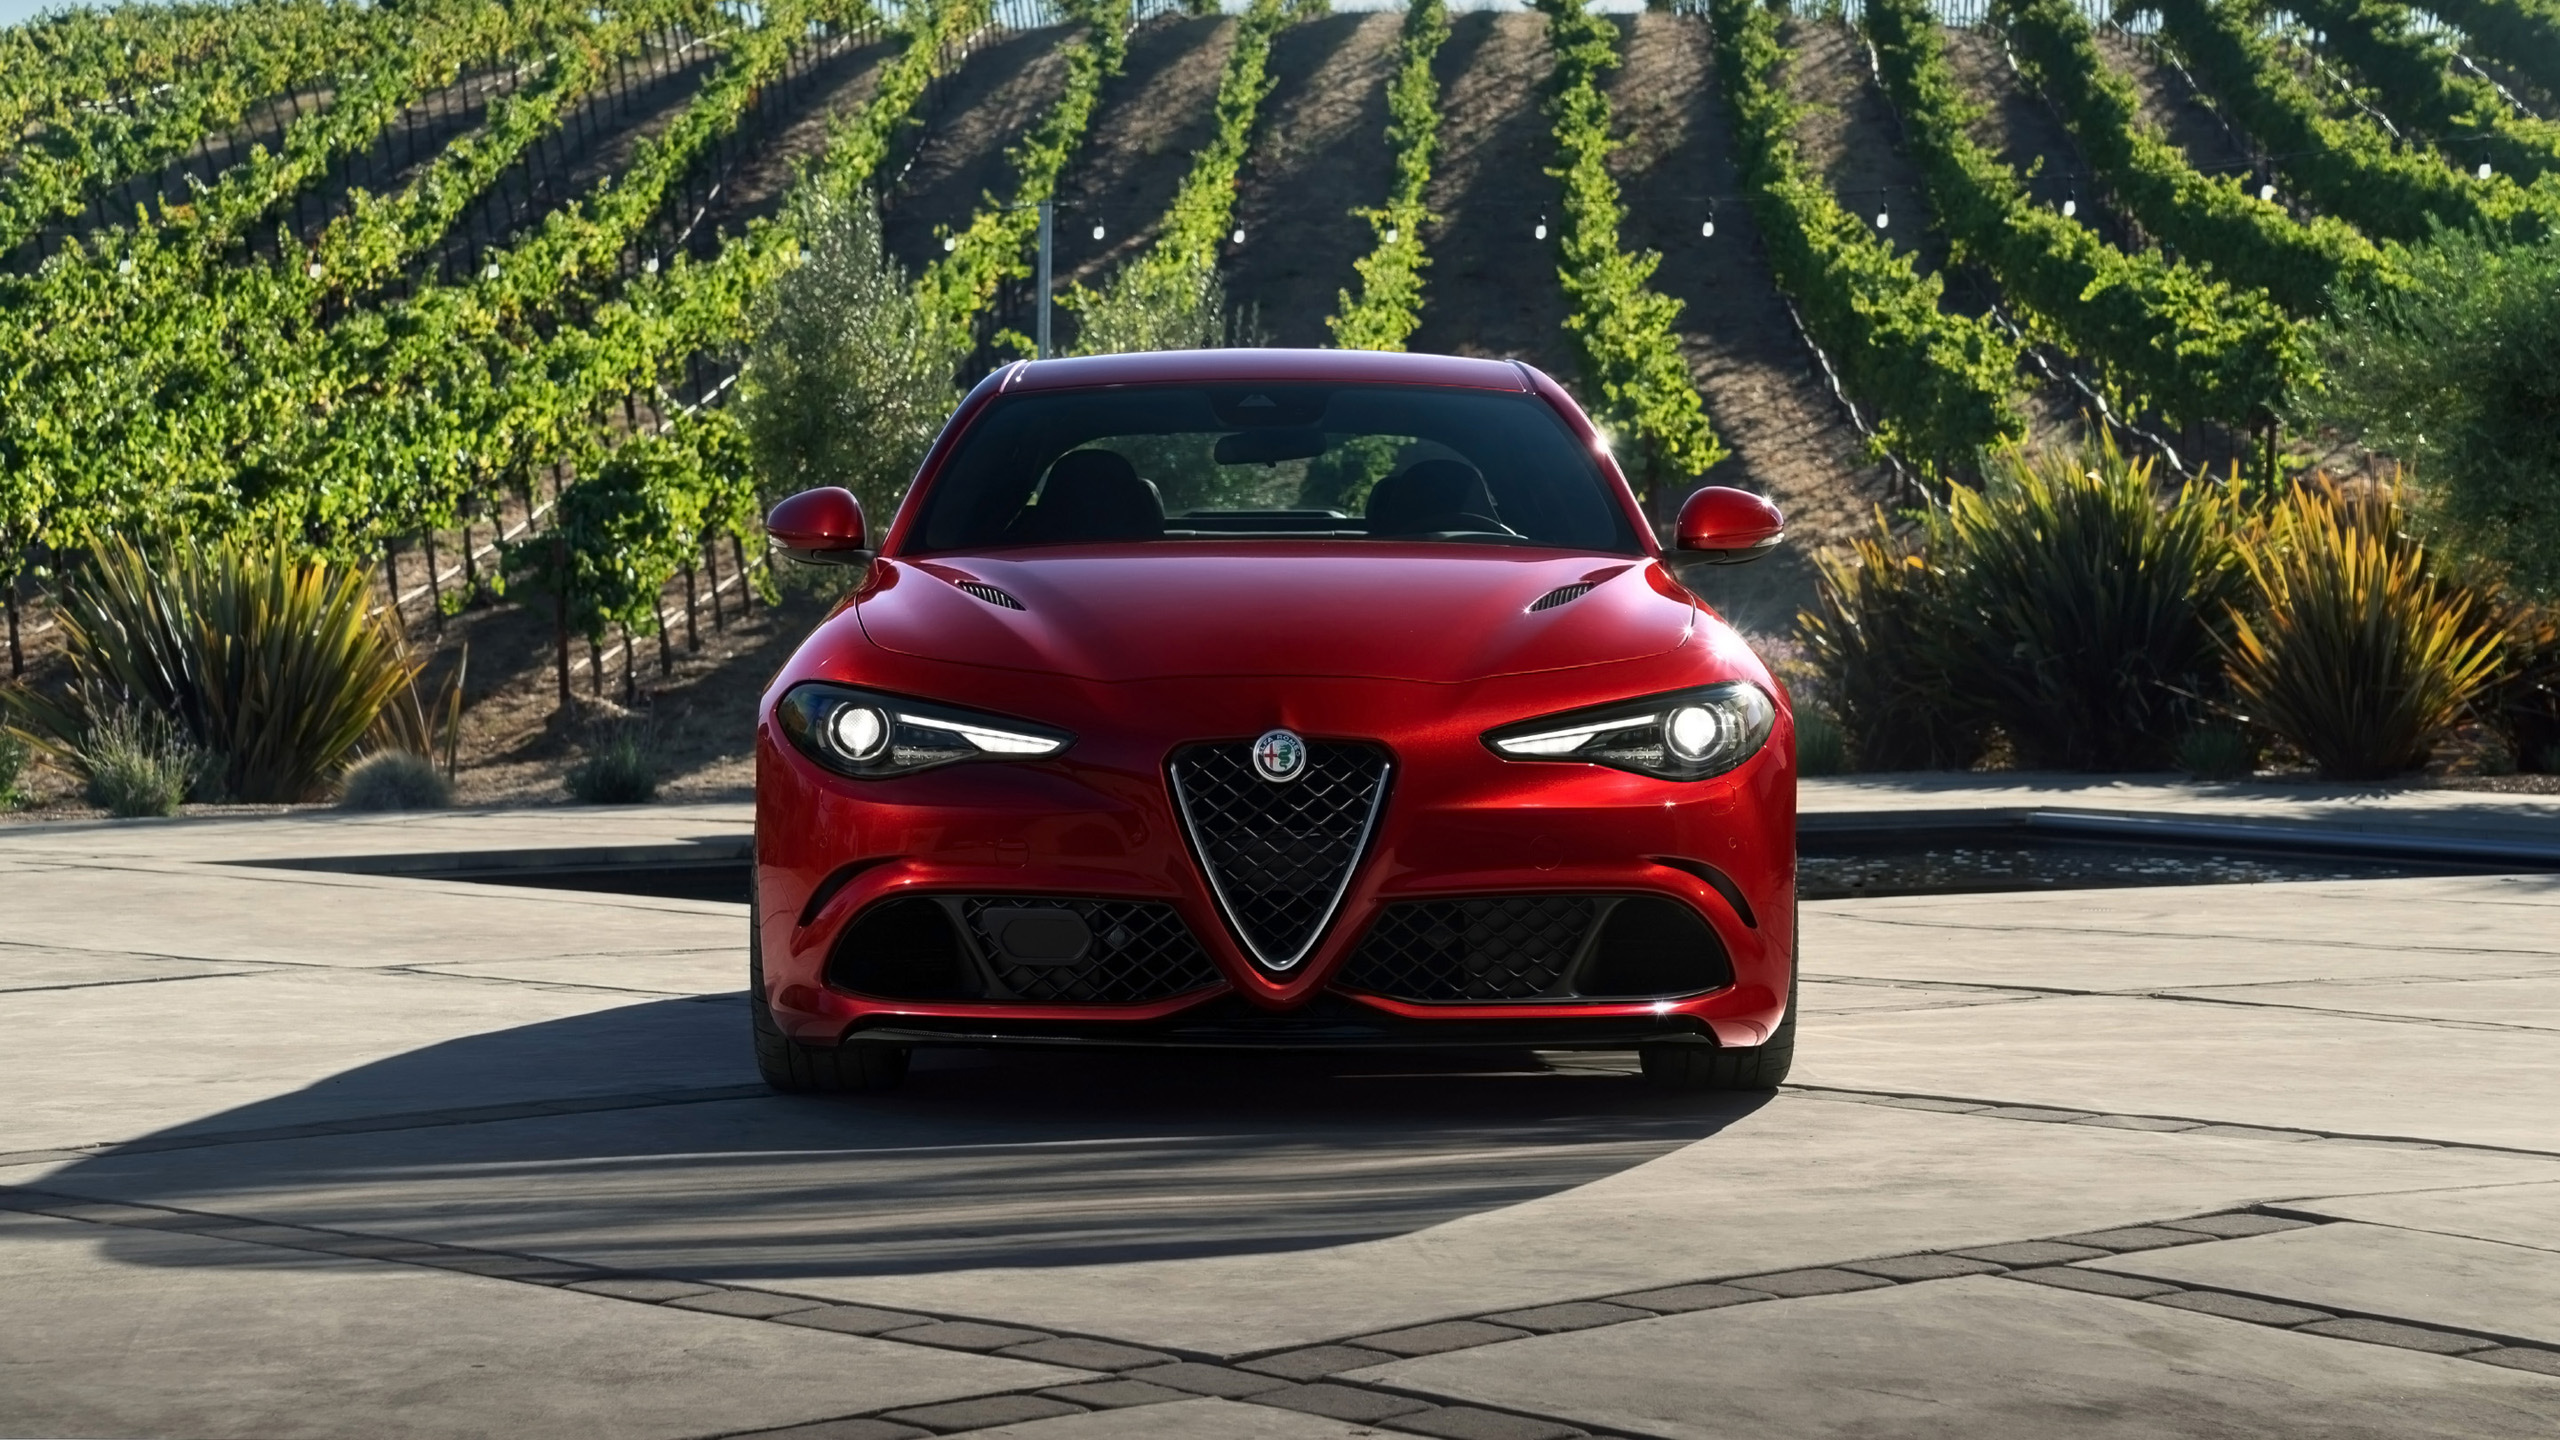 2017 Alfa Romeo Giulia Quadrifoglio 3 Wallpaper | HD Car ...